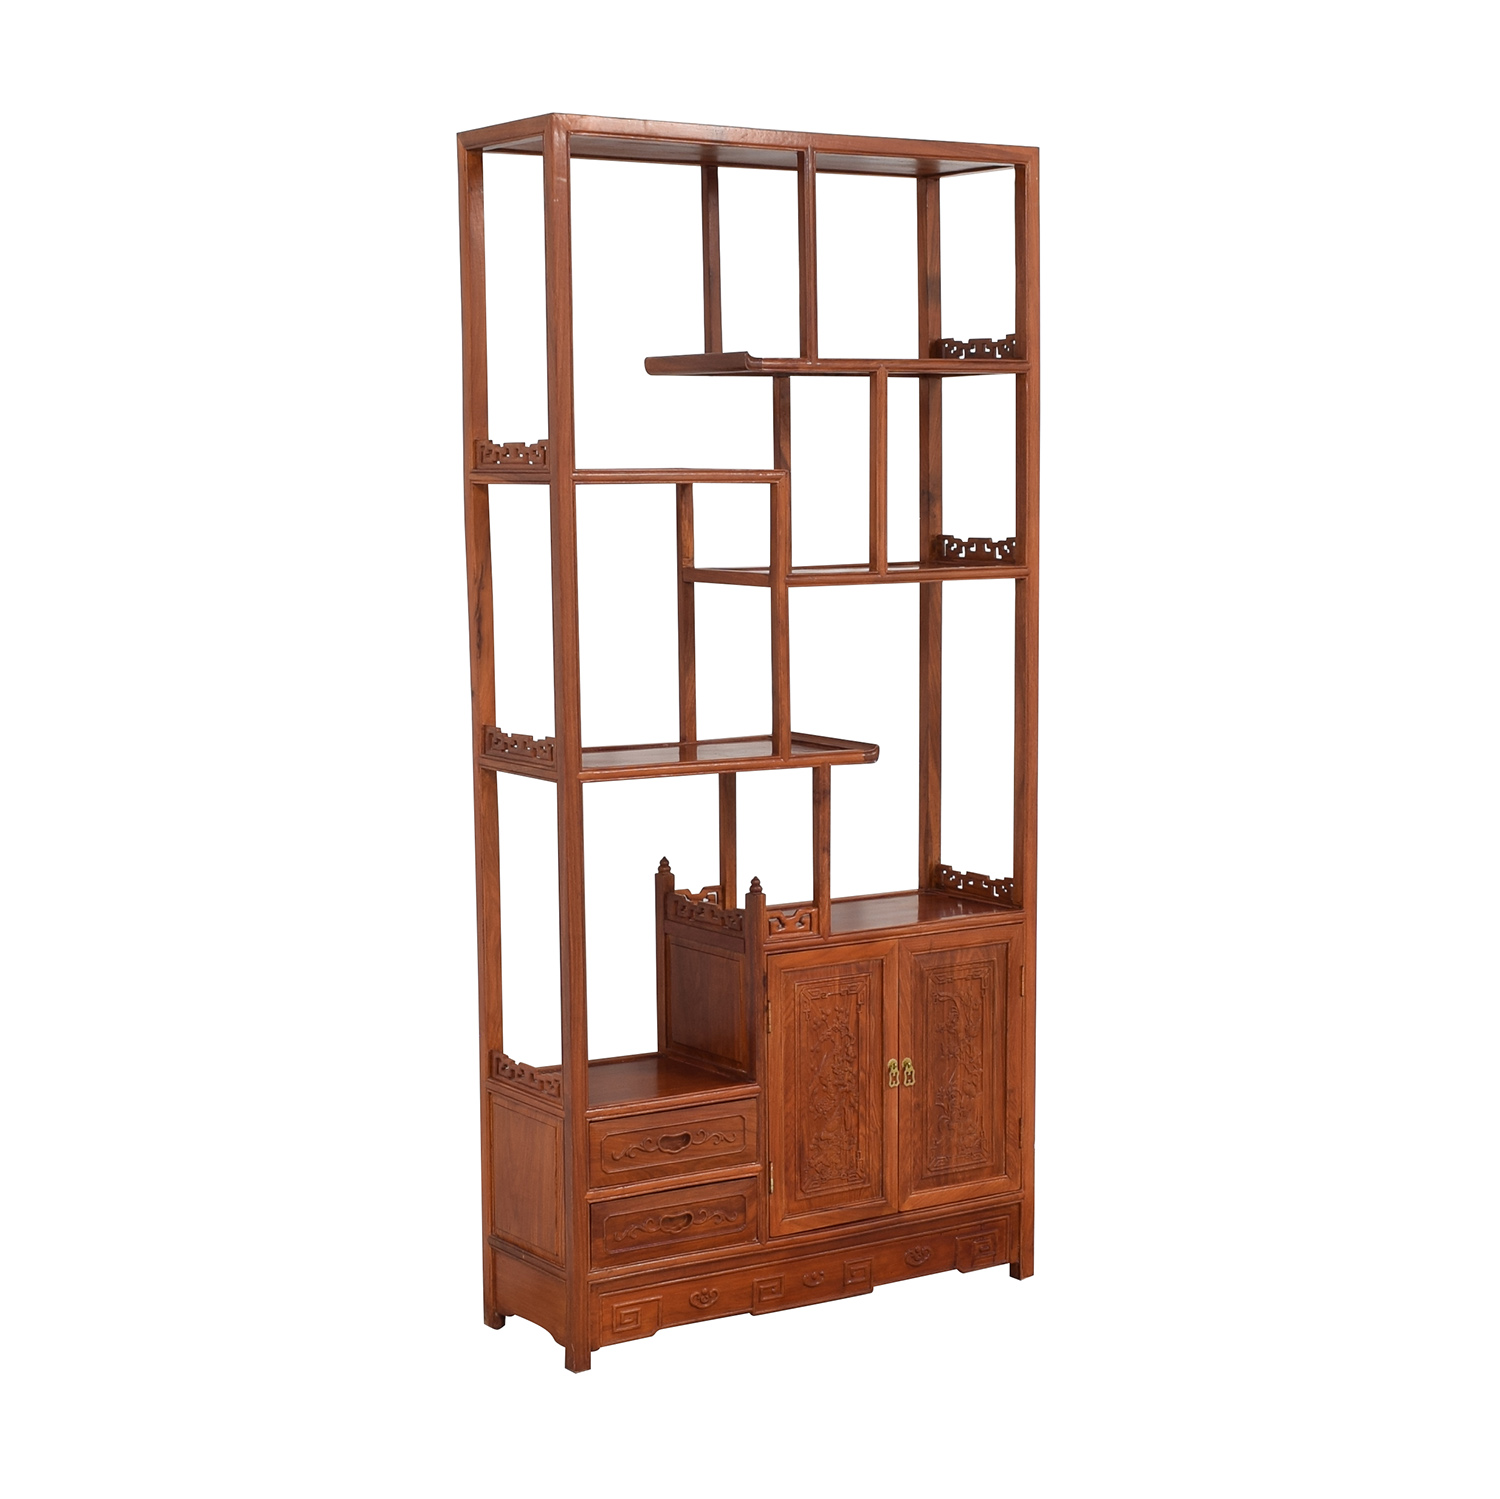 Carved Modular Bookcase Bookcases & Shelving